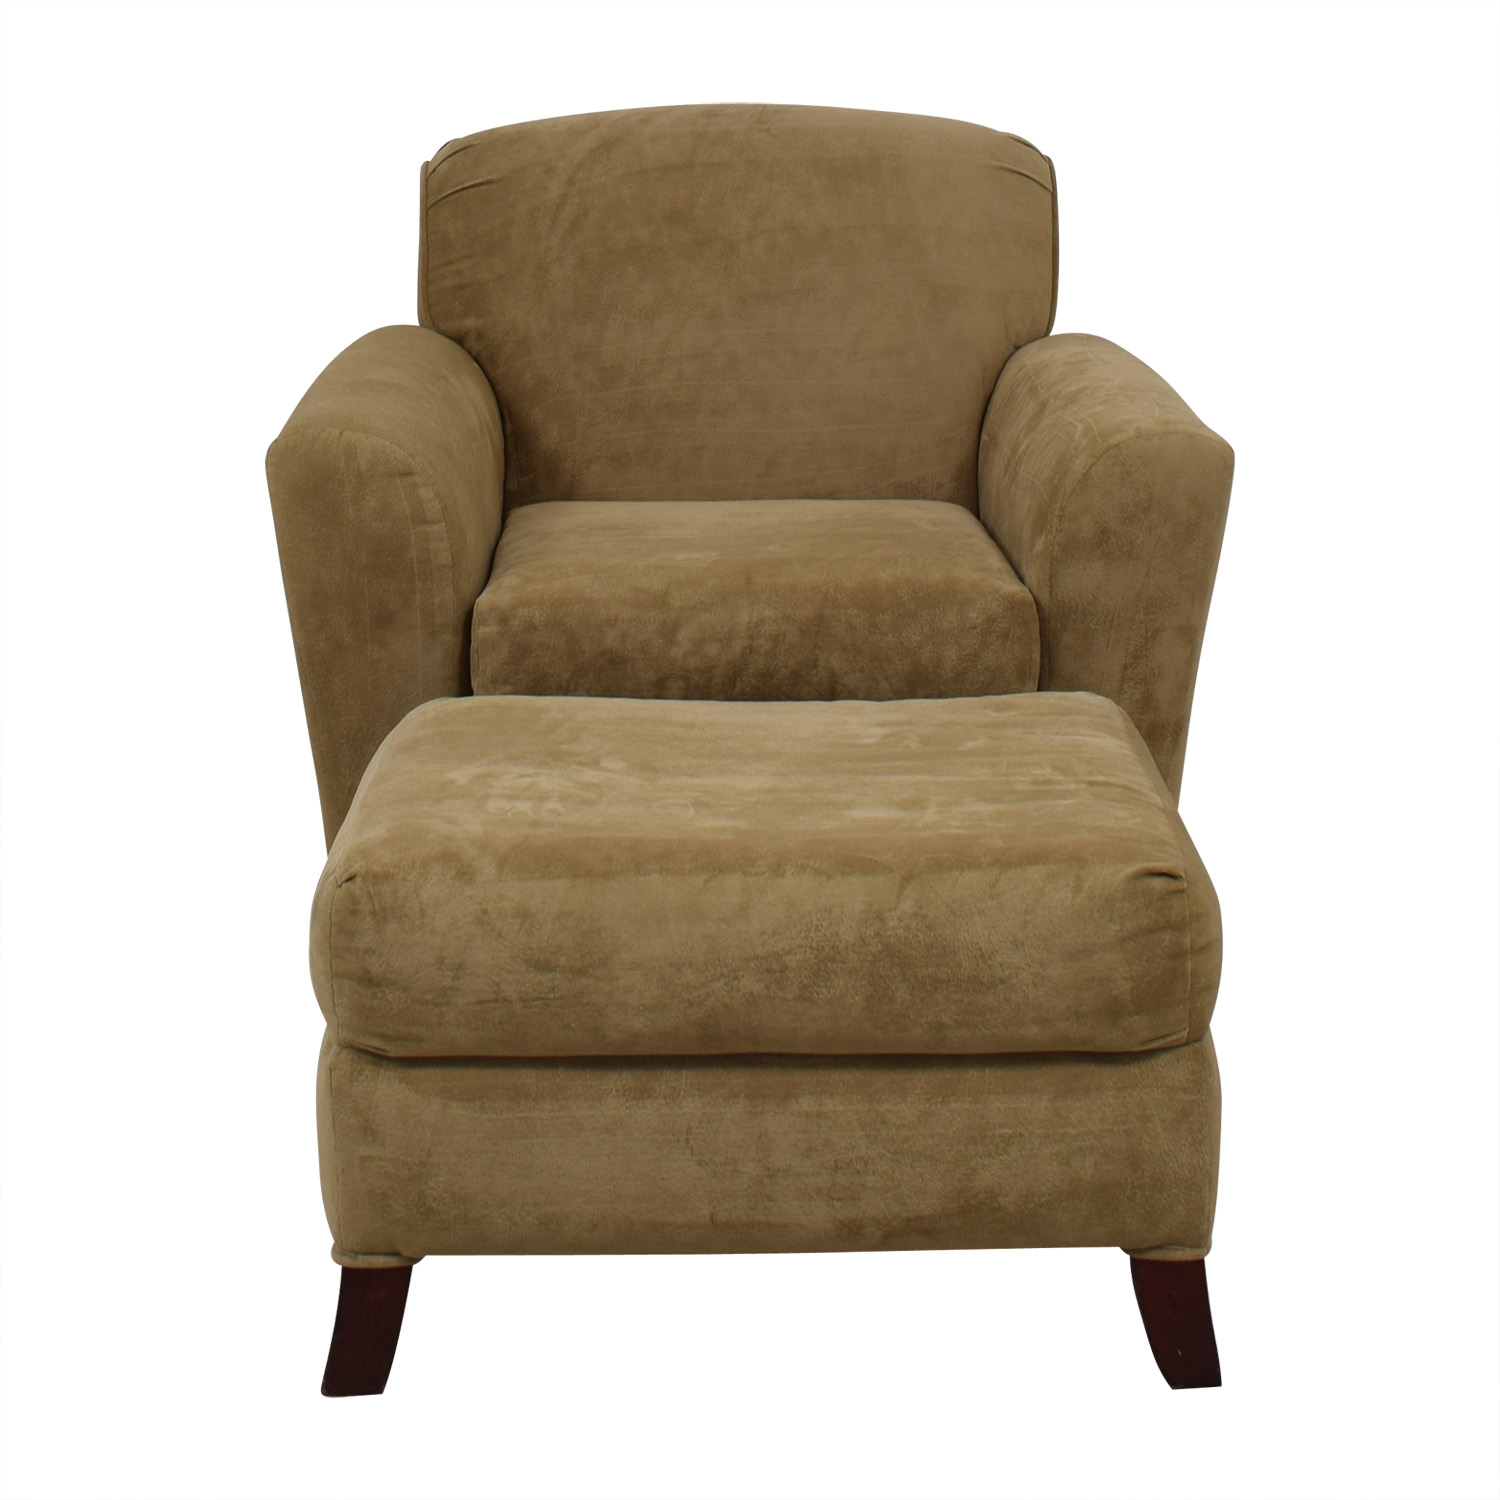 Bassett Furniture Bassett Beige Chair and Ottoman BEIGE